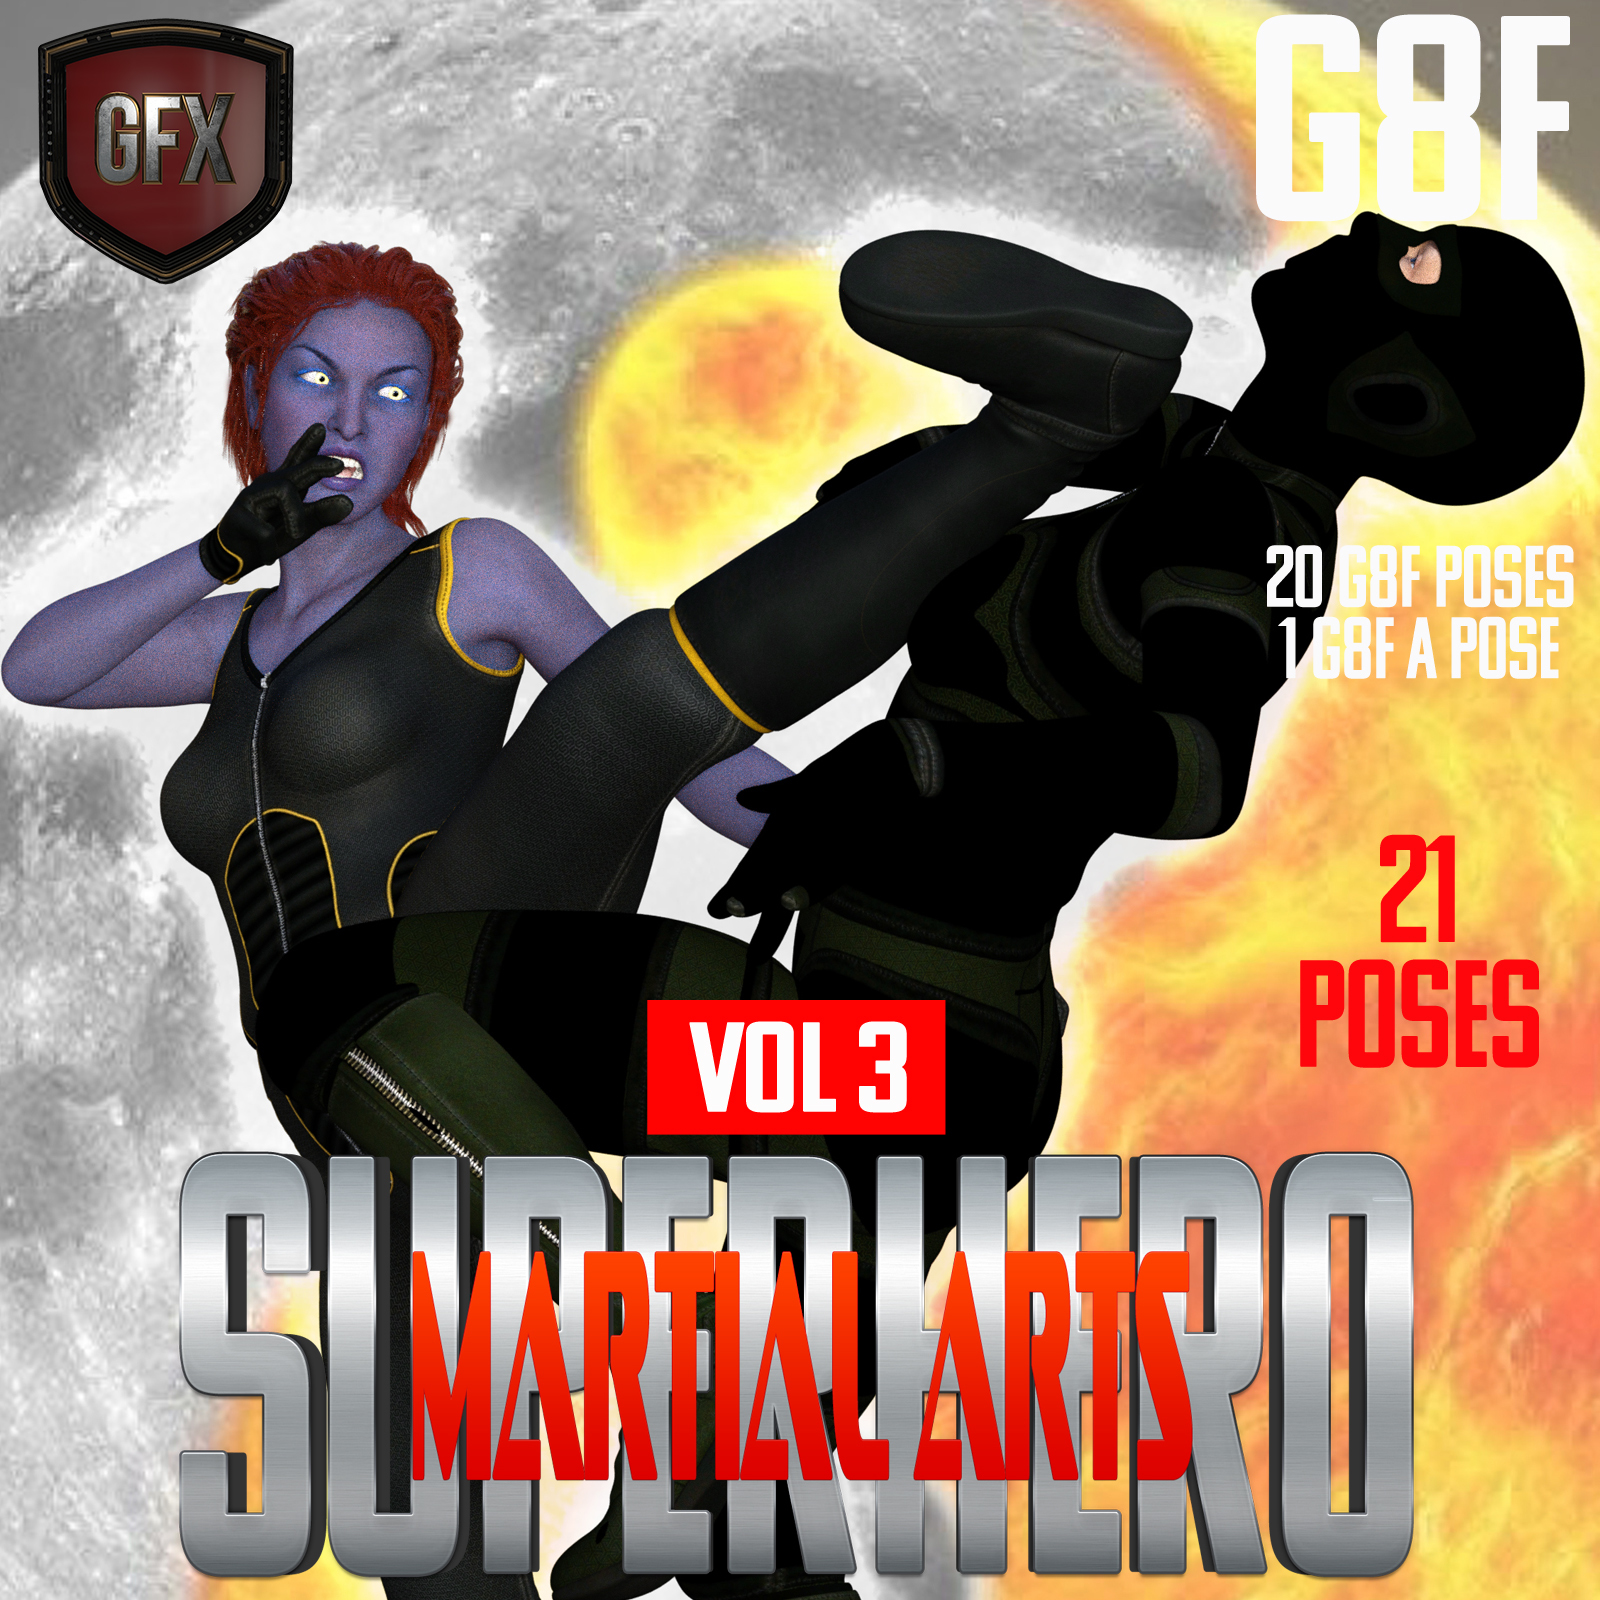 SuperHero Martial Arts for G8F Volume 3 by GriffinFX